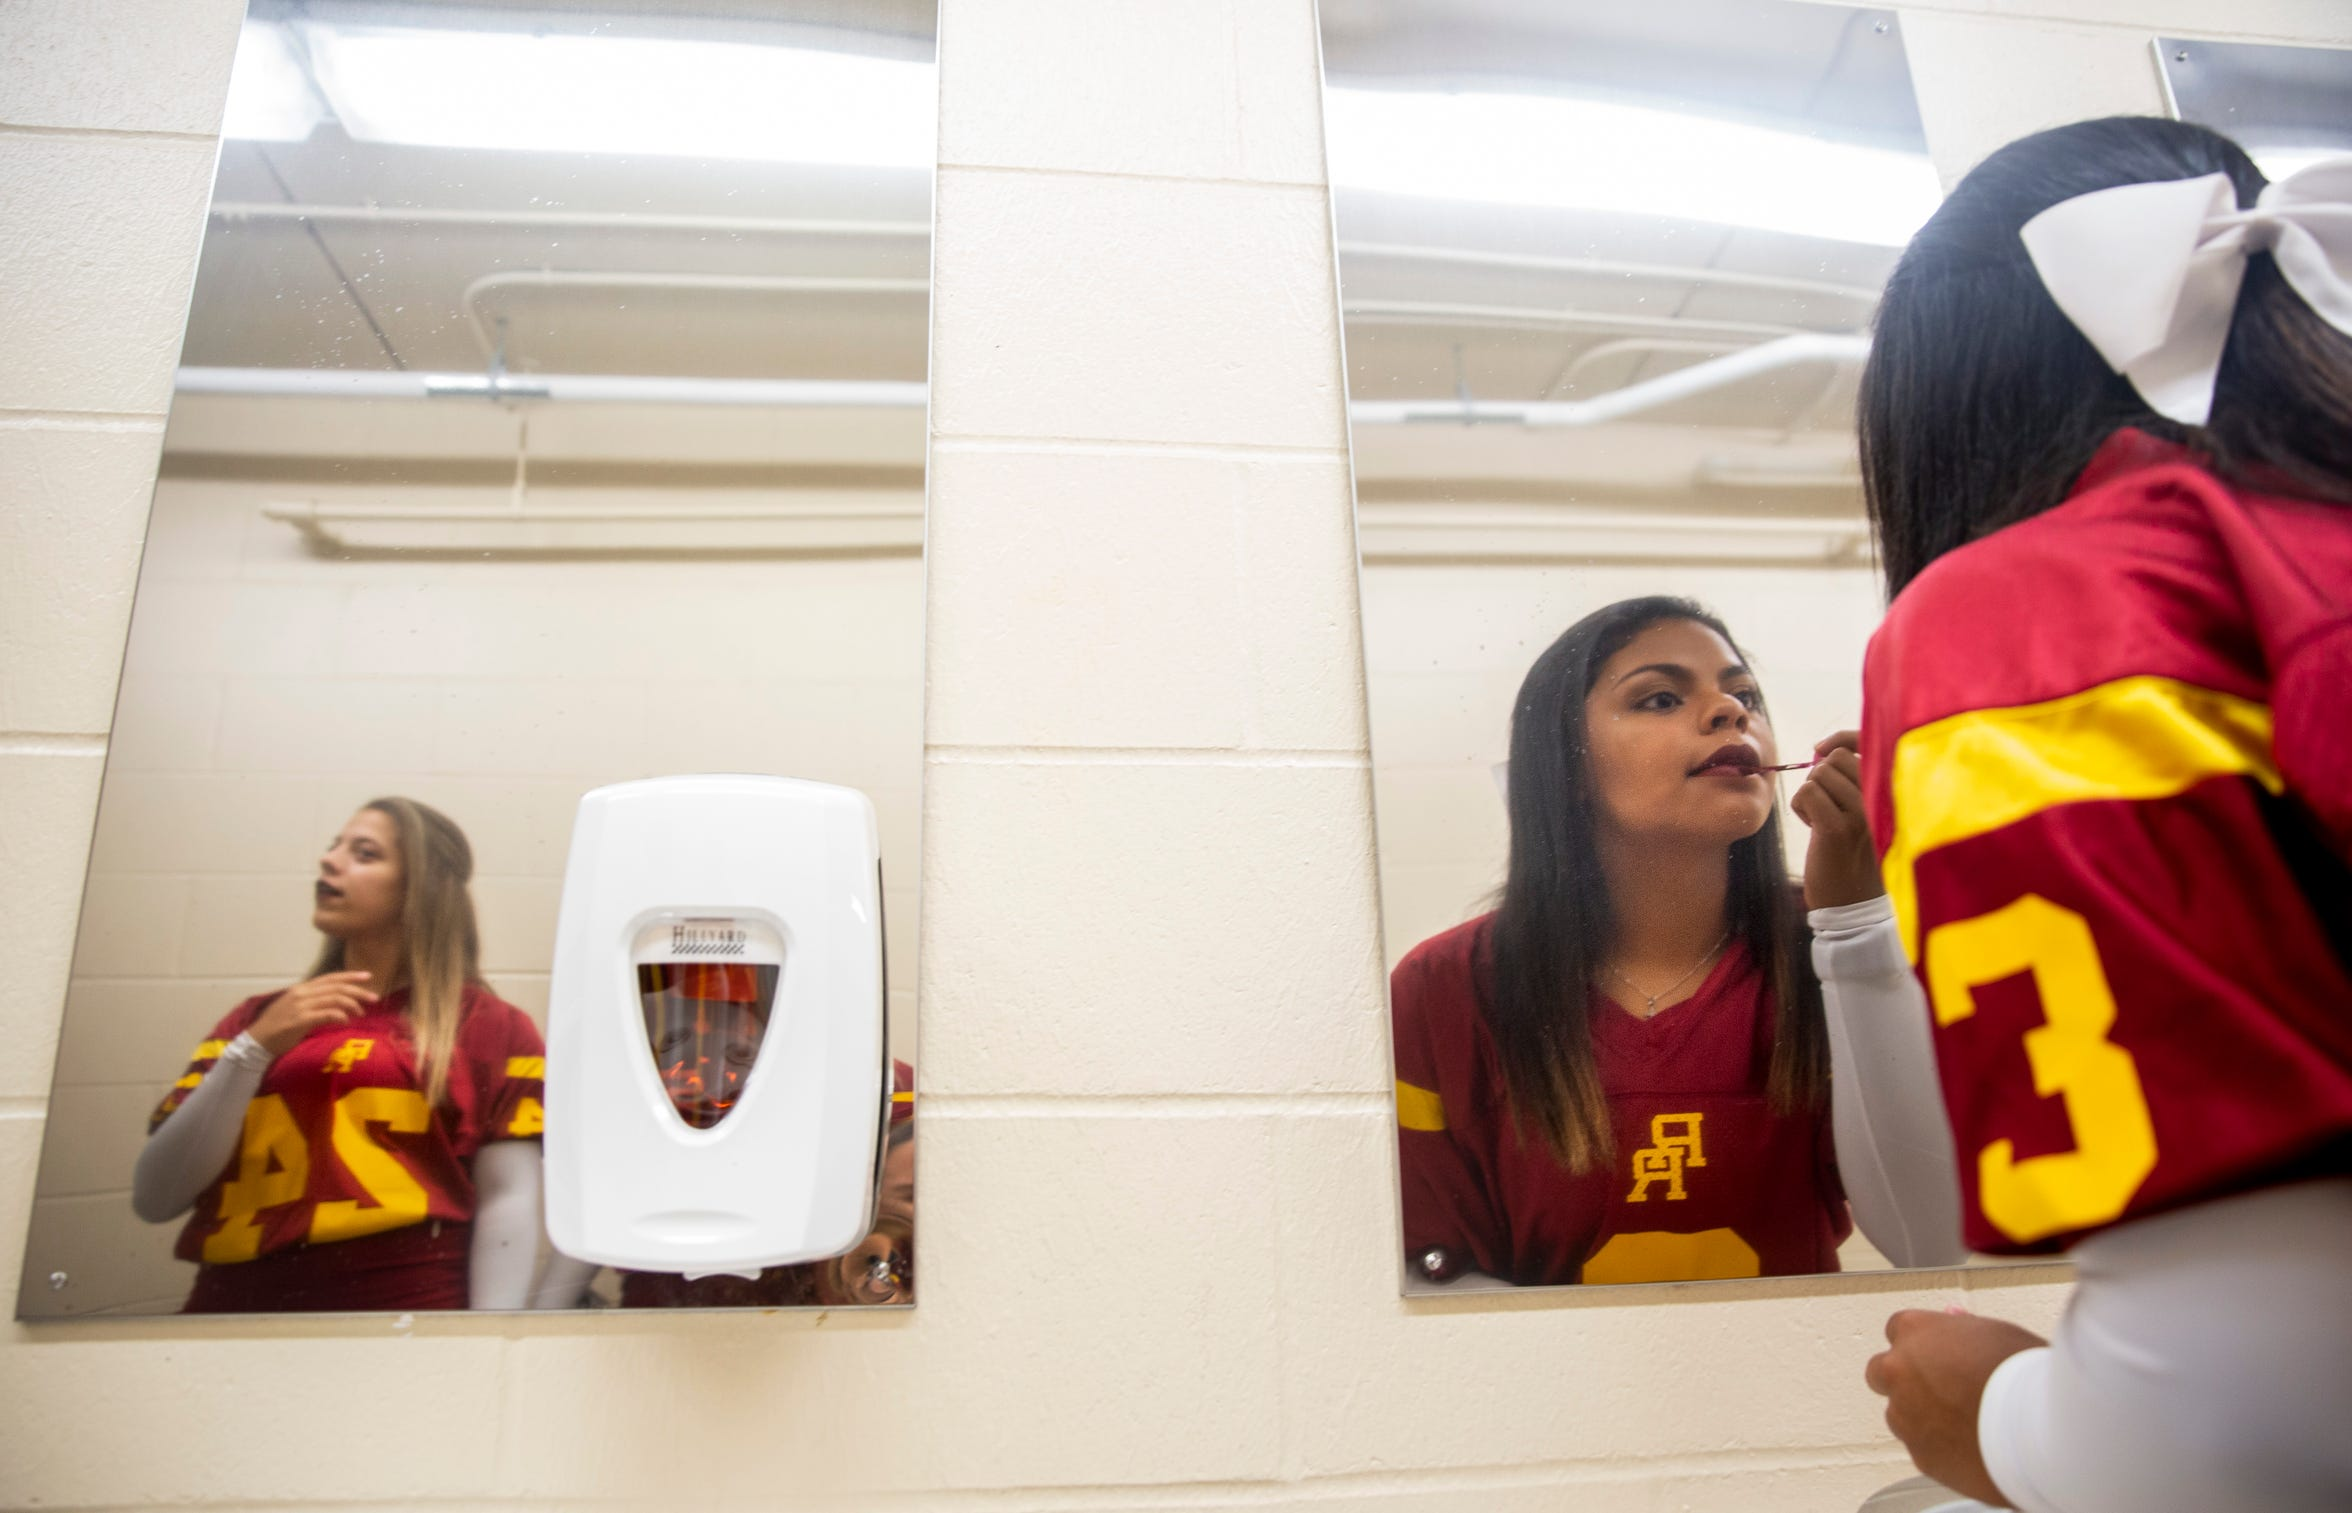 Roosevelt cheerleader Vell Dean (right) applies lipstick before the game on Friday, Sept. 6, 2019 at Howard Wood Field in Sioux Falls.